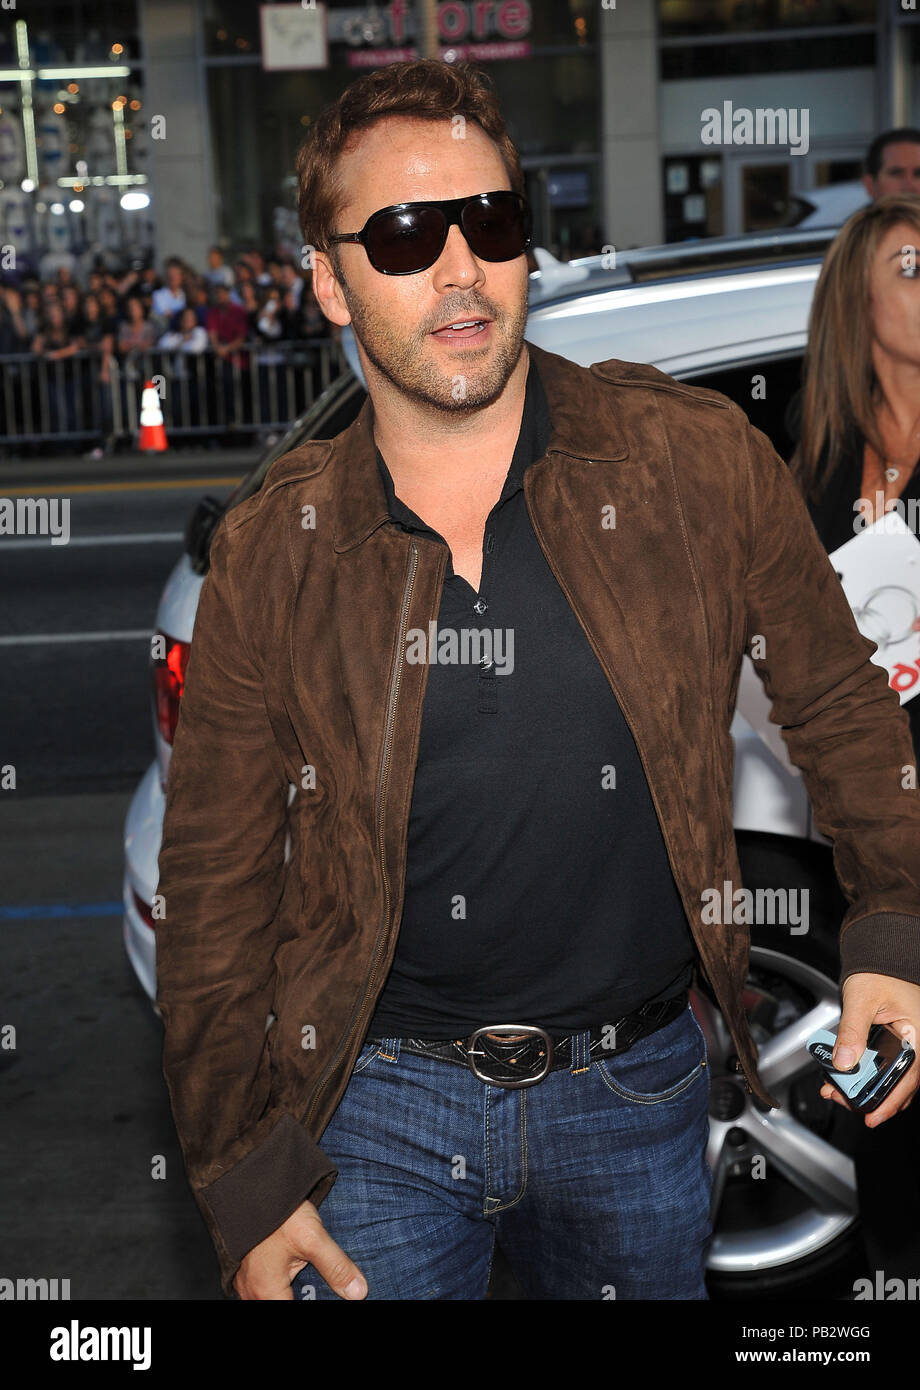 Jeremy Piven - Hangover Premiere at the Chinese Theatre In Los Angeles.PivenJeremy_63 Red Carpet Event, Vertical, USA, Film Industry, Celebrities,  Photography, Bestof, Arts Culture and Entertainment, Topix Celebrities fashion /  Vertical, Best of, Event in Hollywood Life - California,  Red Carpet and backstage, USA, Film Industry, Celebrities,  movie celebrities, TV celebrities, Music celebrities, Photography, Bestof, Arts Culture and Entertainment,  Topix, vertical, one person,, from the years , 2006 to 2009, inquiry tsuni@Gamma-USA.com - Three Quarters - Stock Image